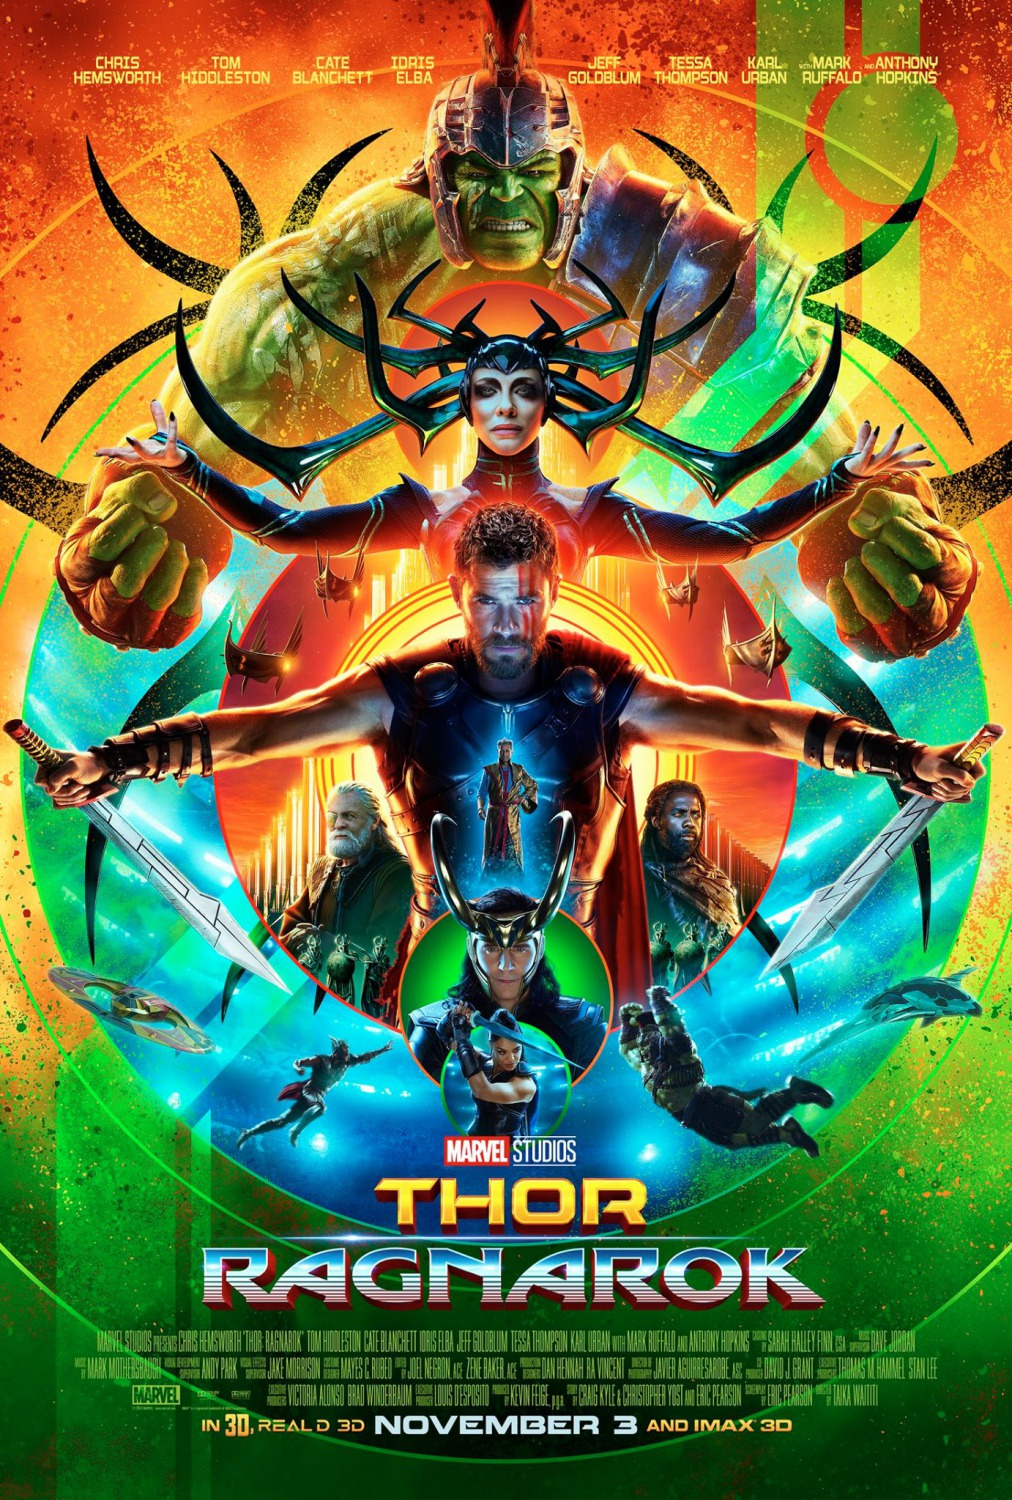 Thor: Ragnarok poster featuring the Hulk, Hela, Thor, Heimdall, Odin, Loki Valkyrie, and the Grandmaster.